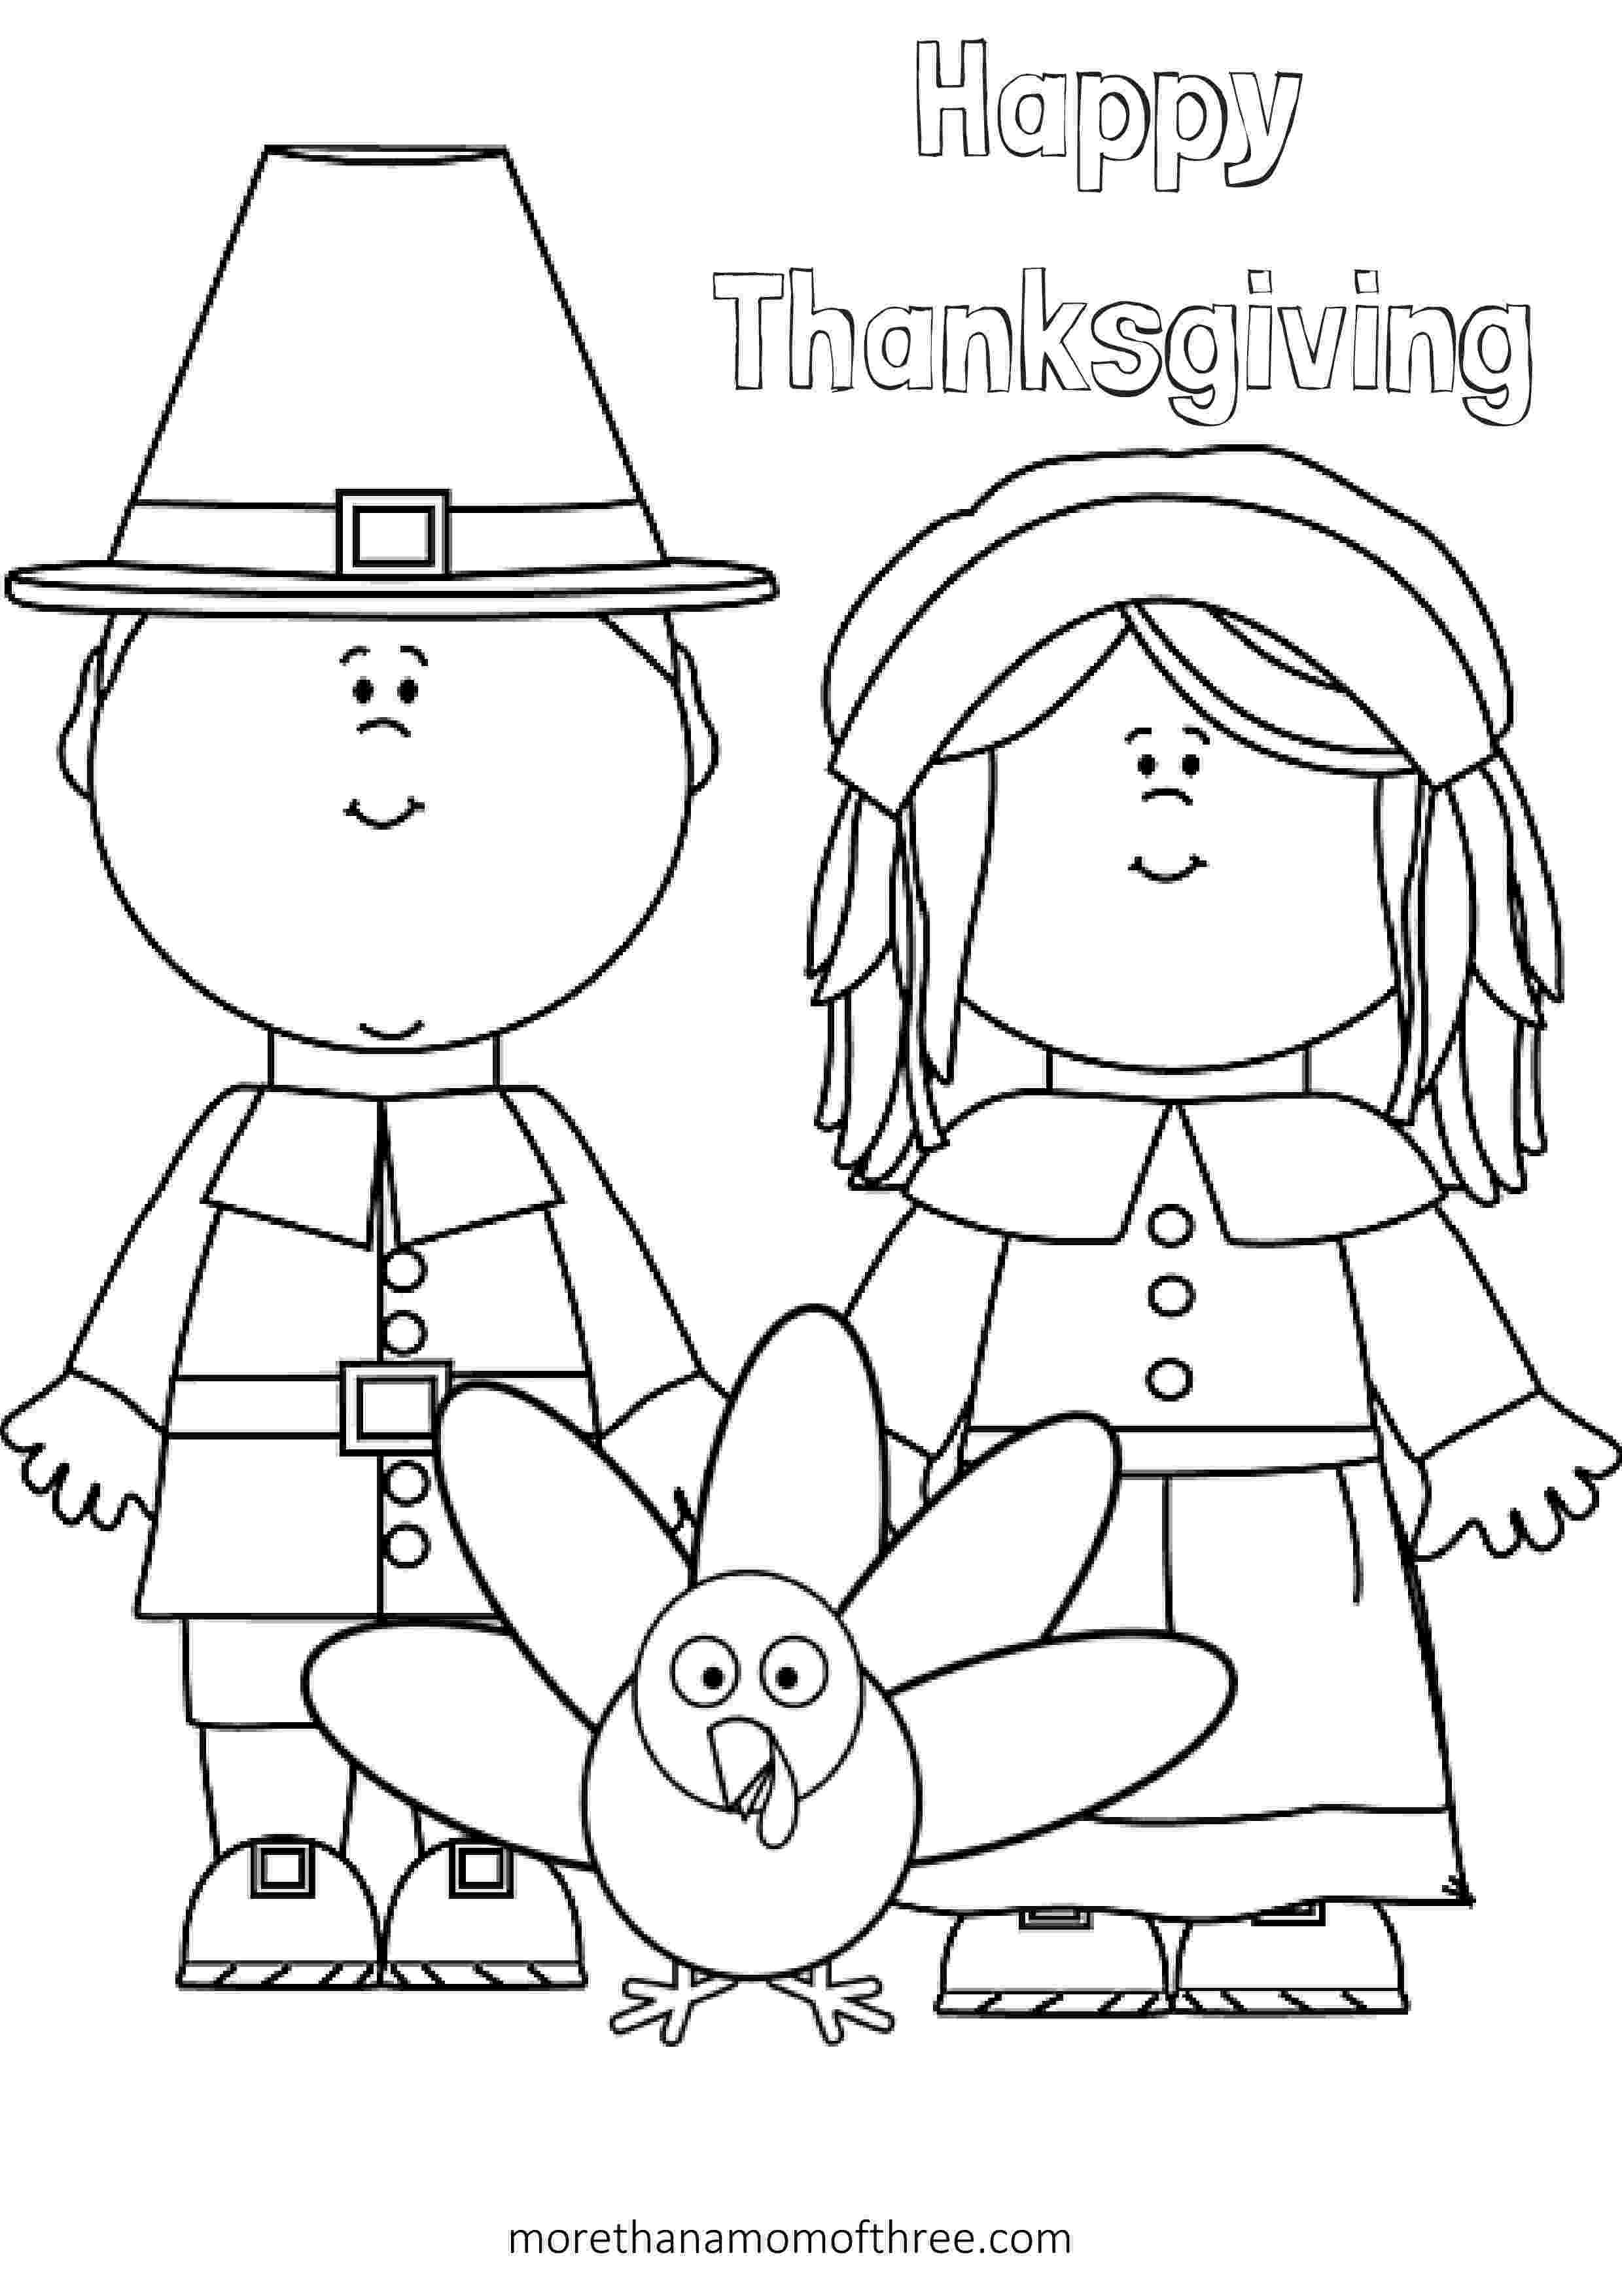 printable coloring pages thanksgiving free free printable thanksgiving coloring page in 3 sizes free printable thanksgiving coloring pages